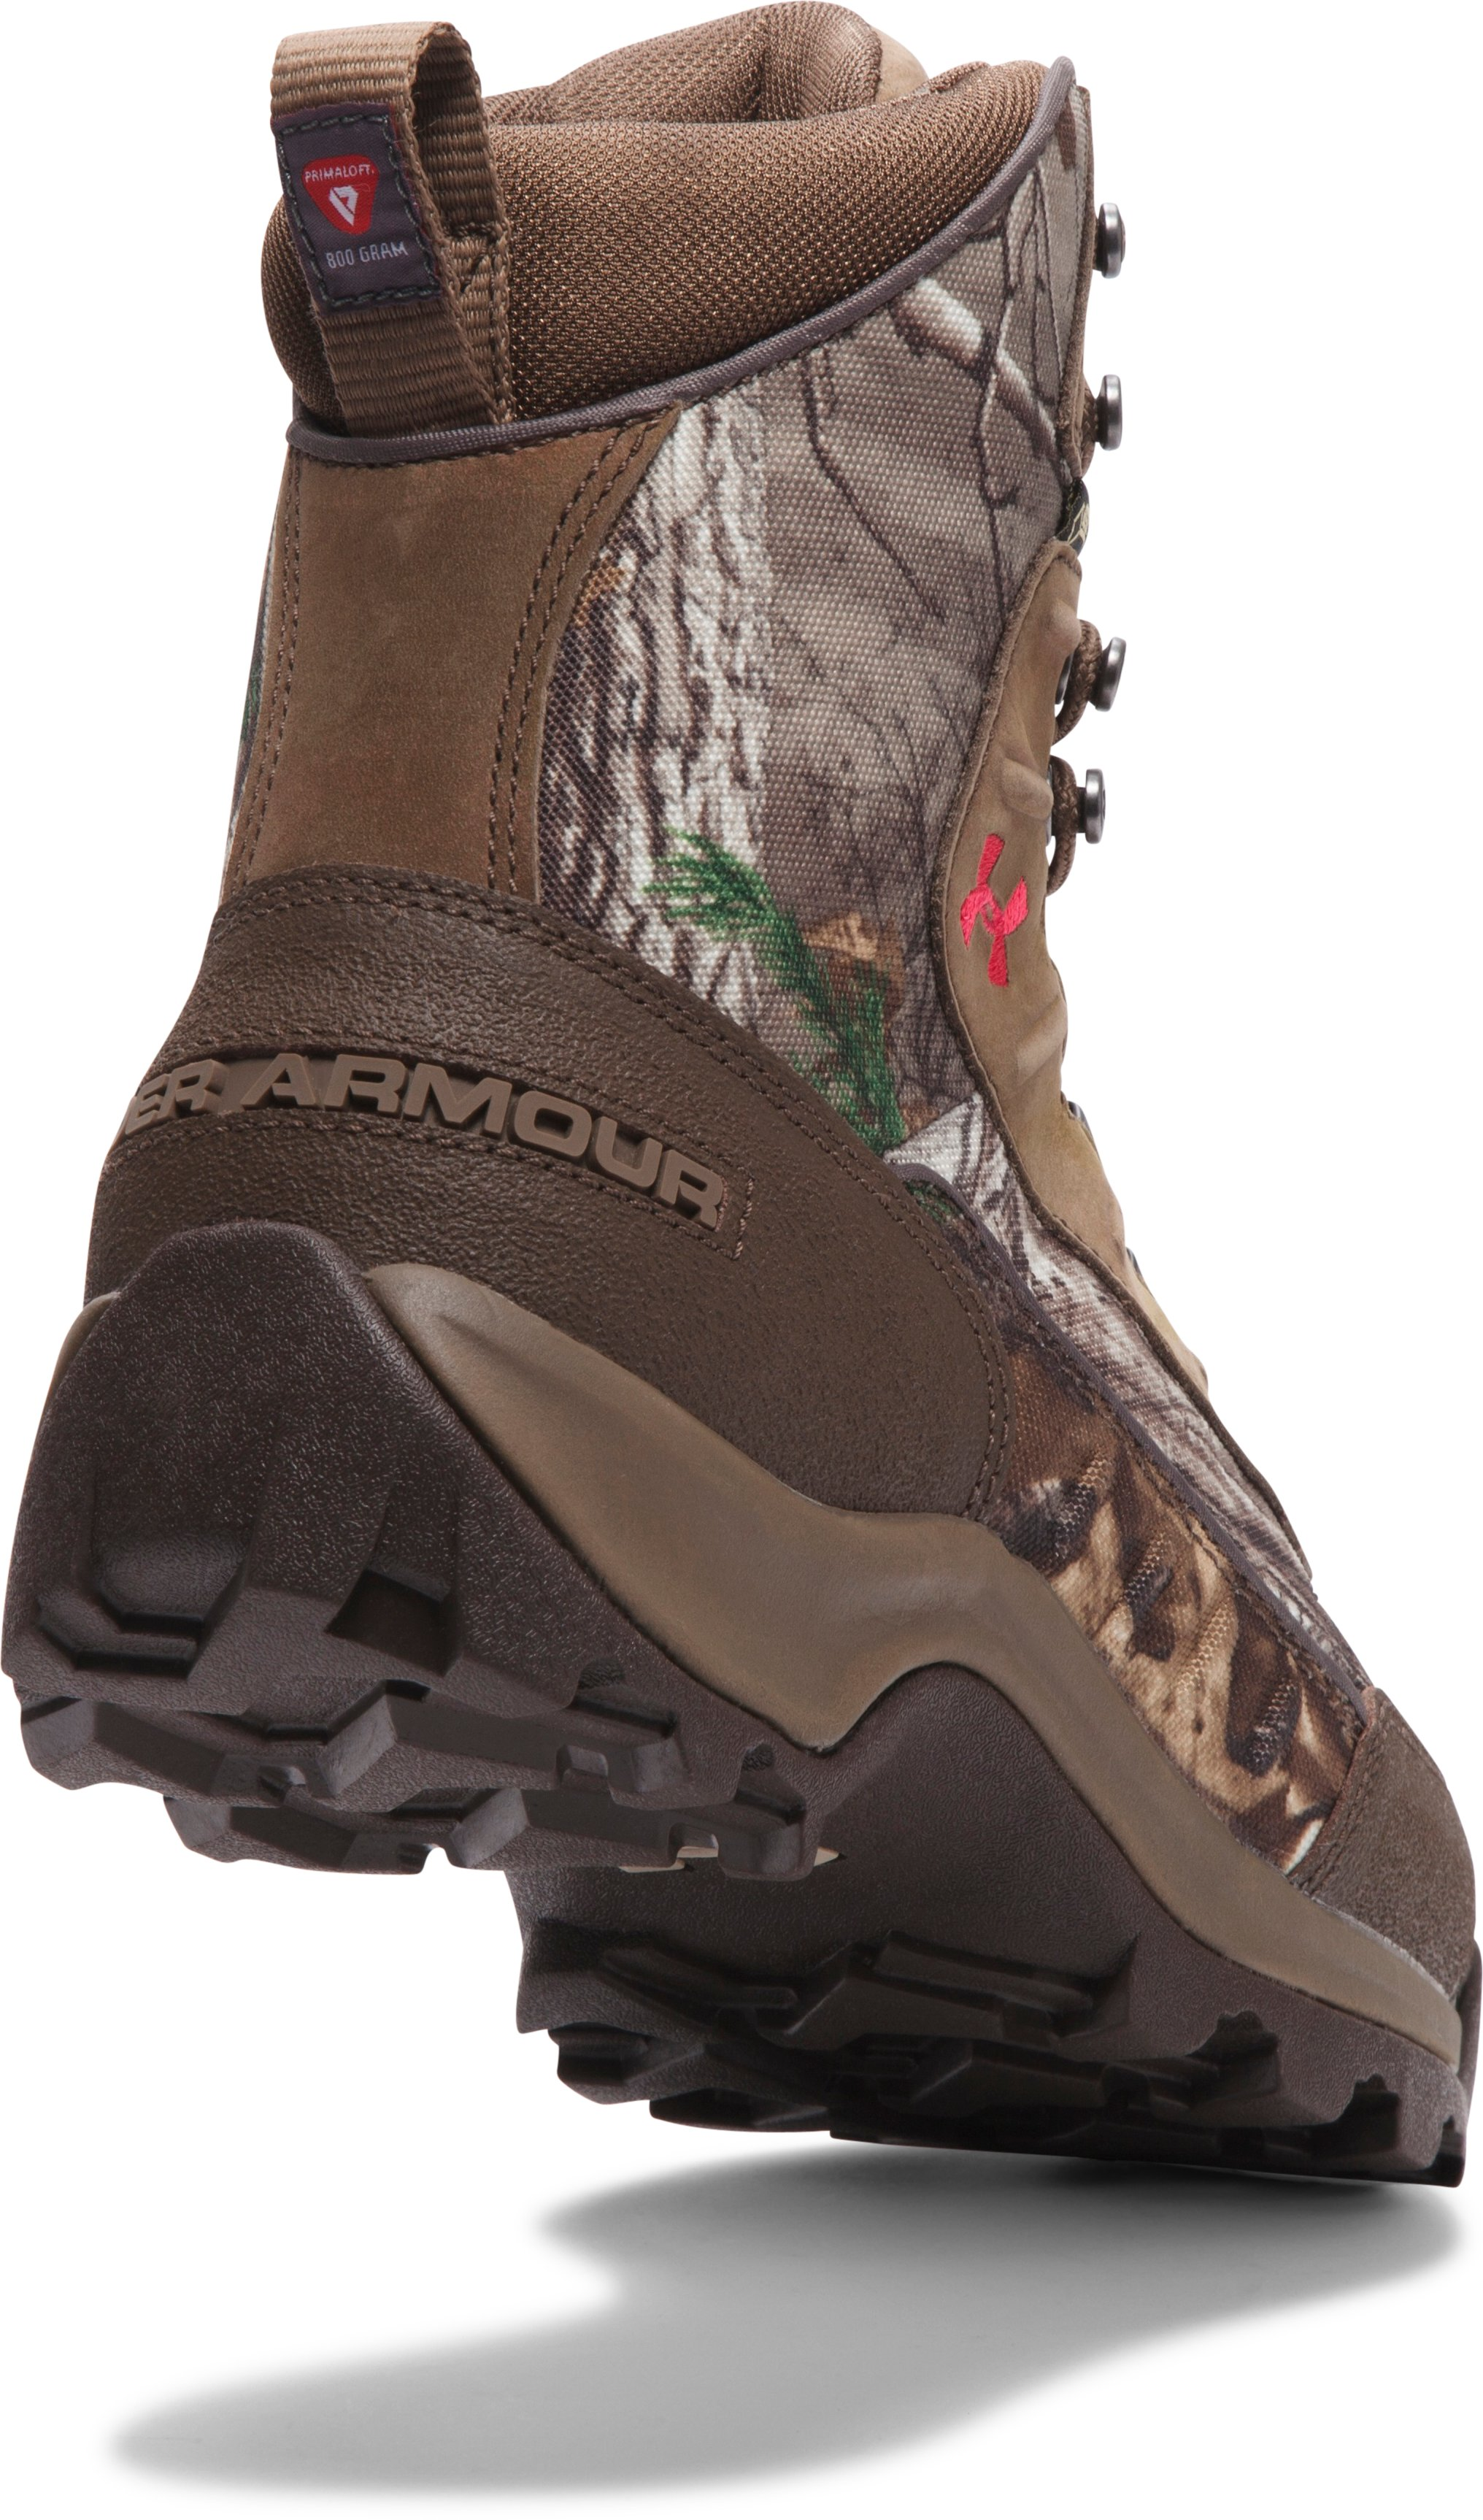 Women's UA Brow Tine 800 Hunting Boot, REALTREE AP-XTRA,